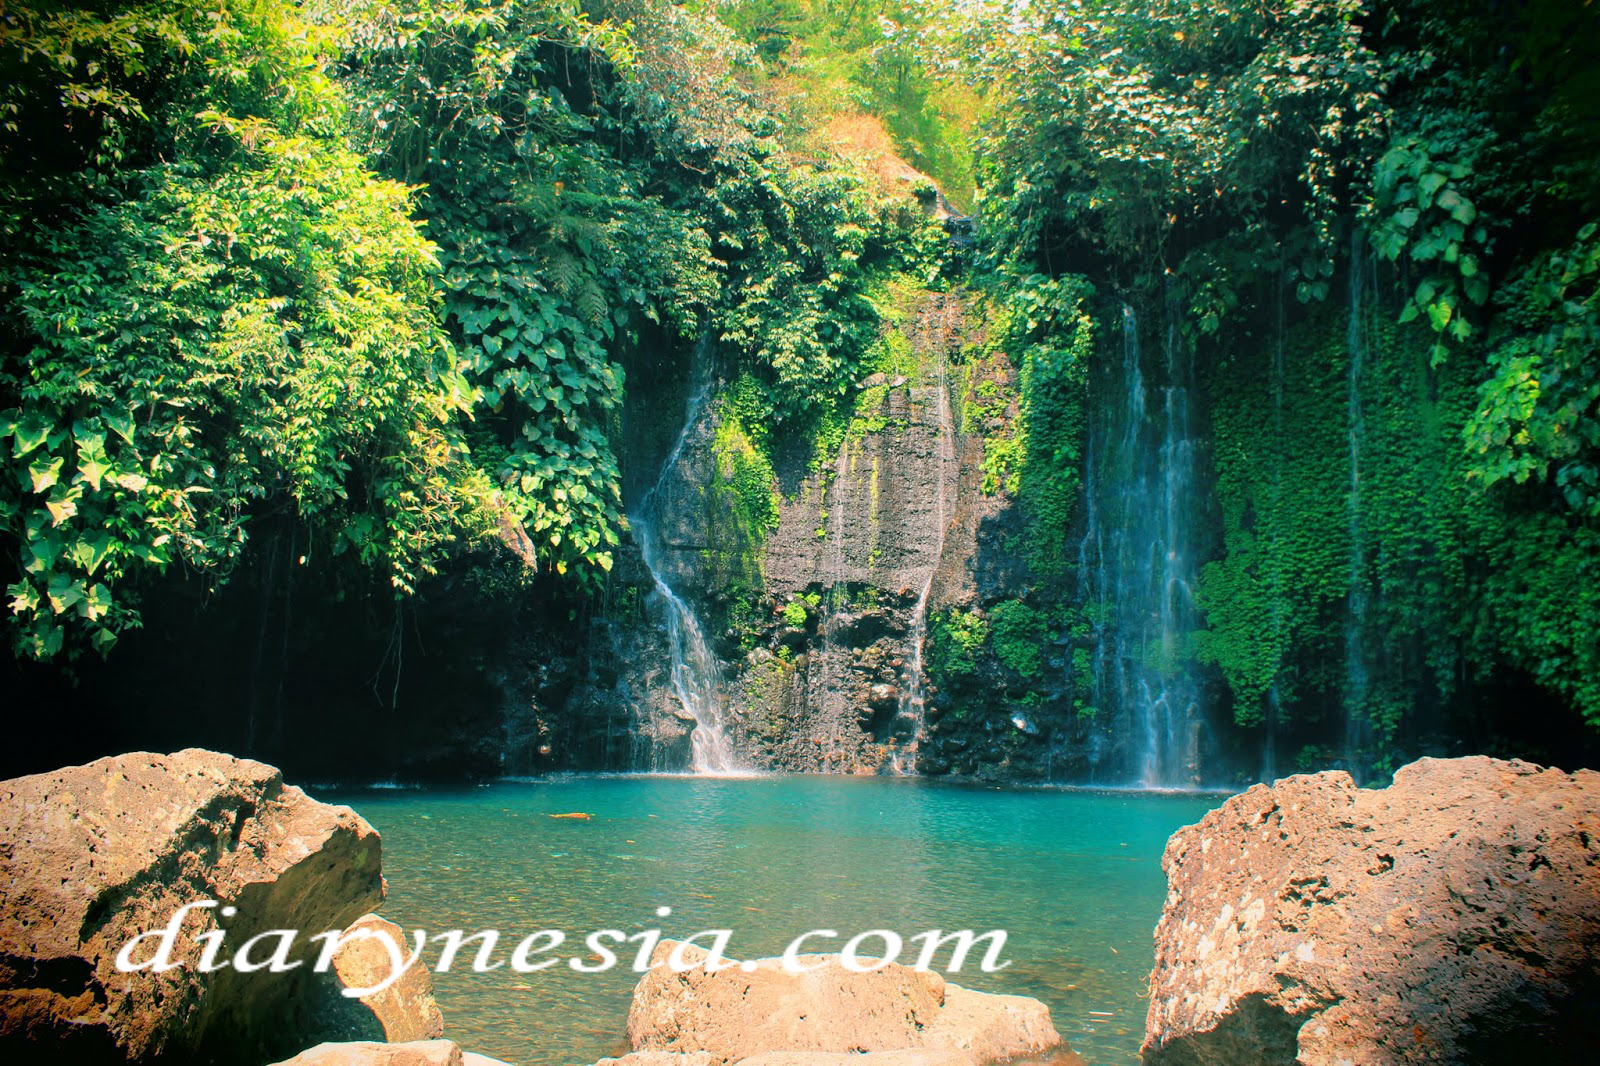 Pemalang tourism, Central Java, Pemalang tourist attraction, diarynesia